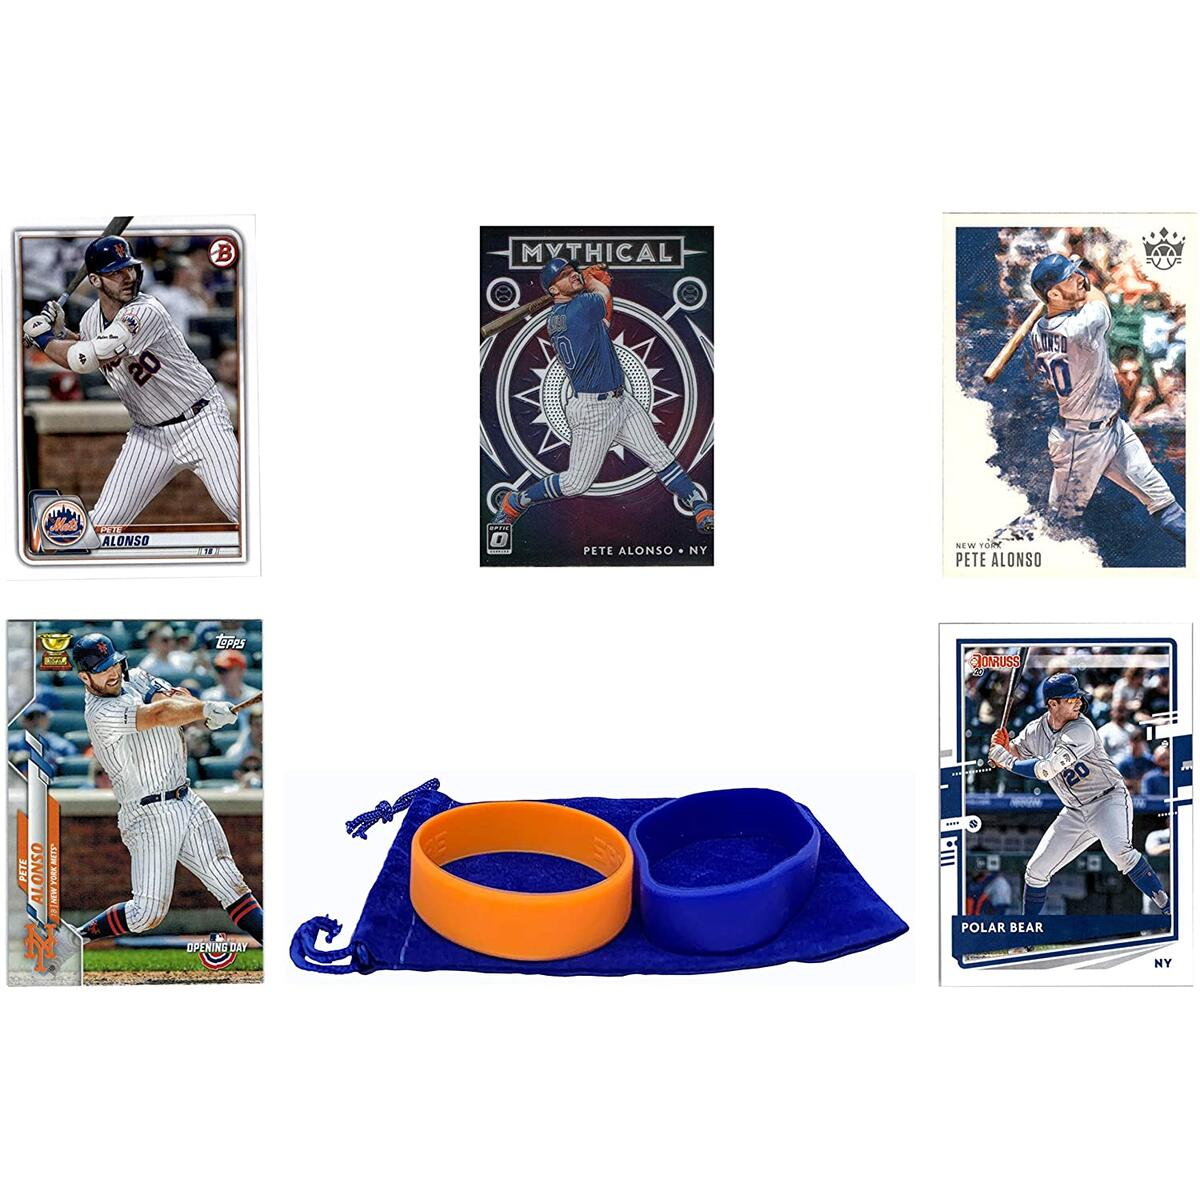 Pete Alonso Baseball Cards (5) ASSORTED New York Mets Trading Card and Wristbands Gift Bundle